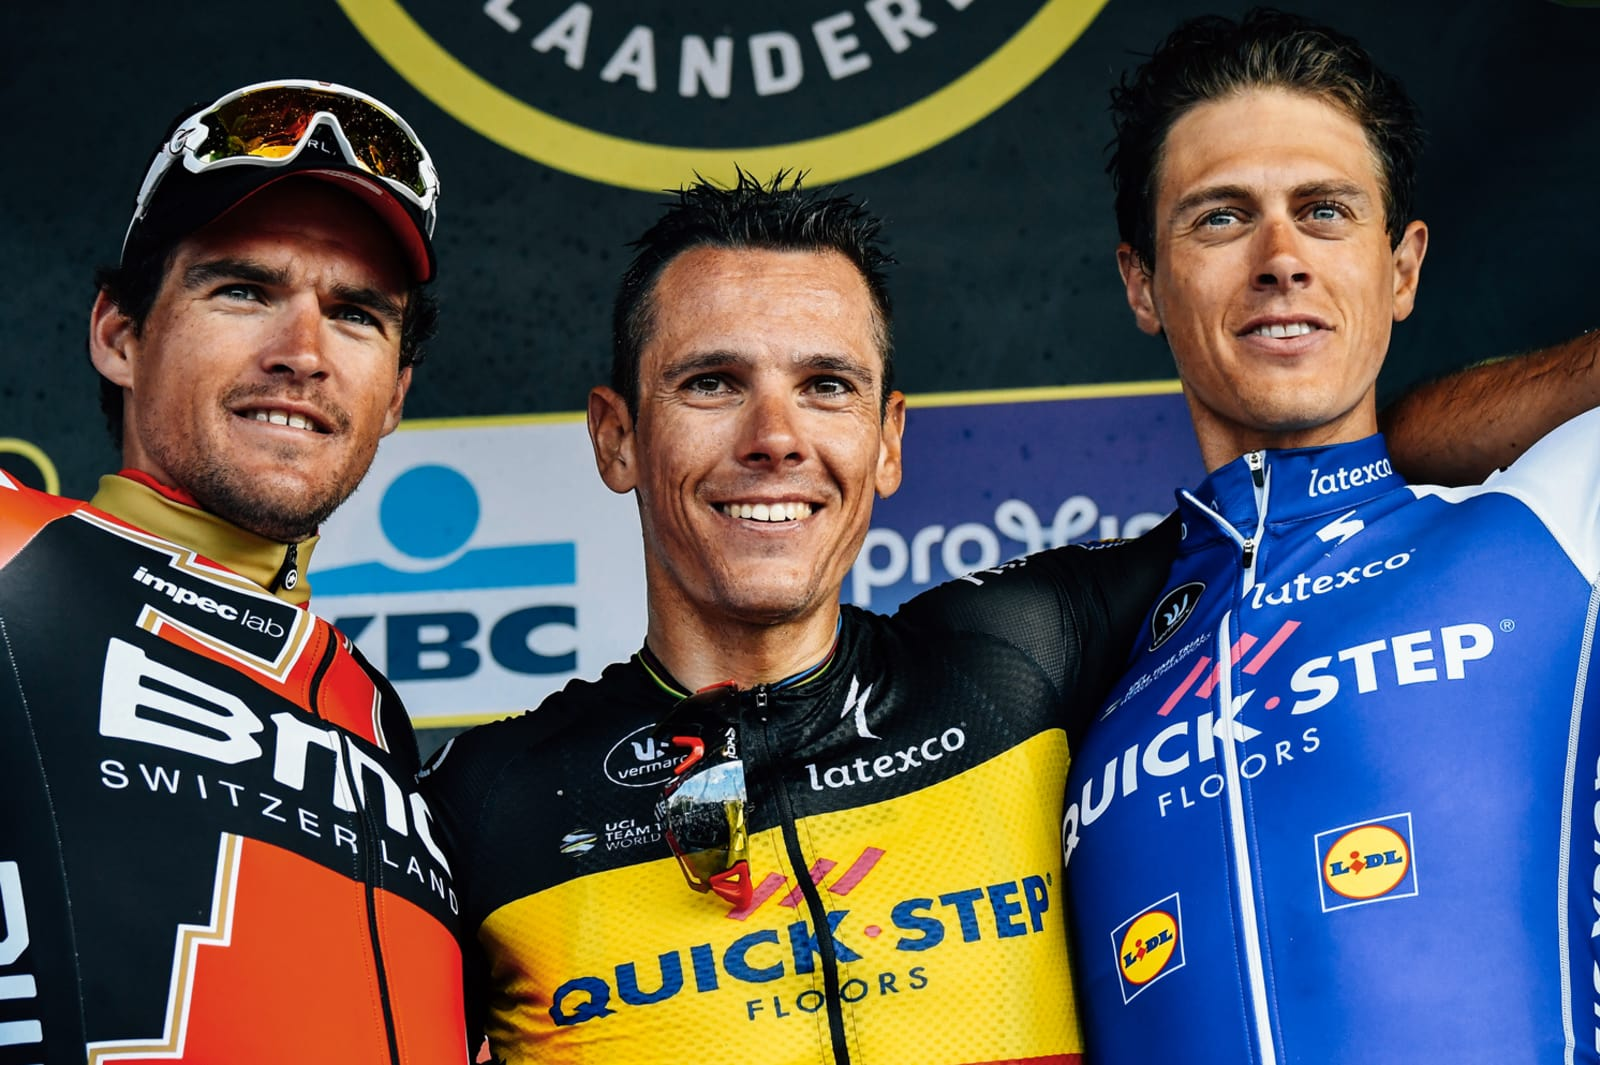 El podio final, con Gilbert, Van Avermaet y Terpstra. © Bettini Photo